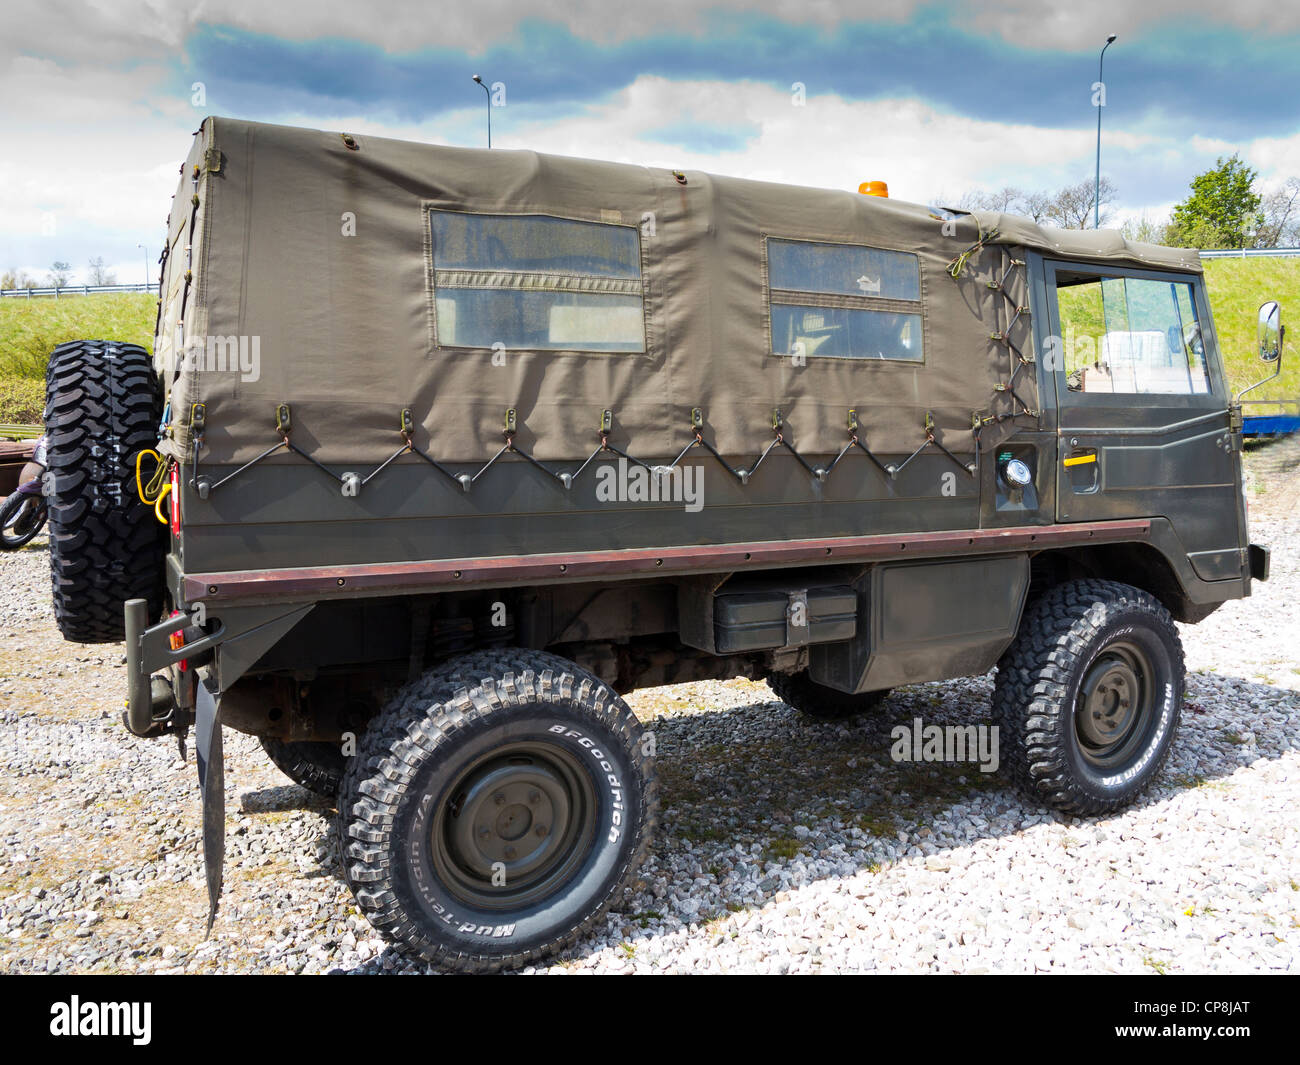 Steyr ouch pinzgauer 4wd swiss army vehicle